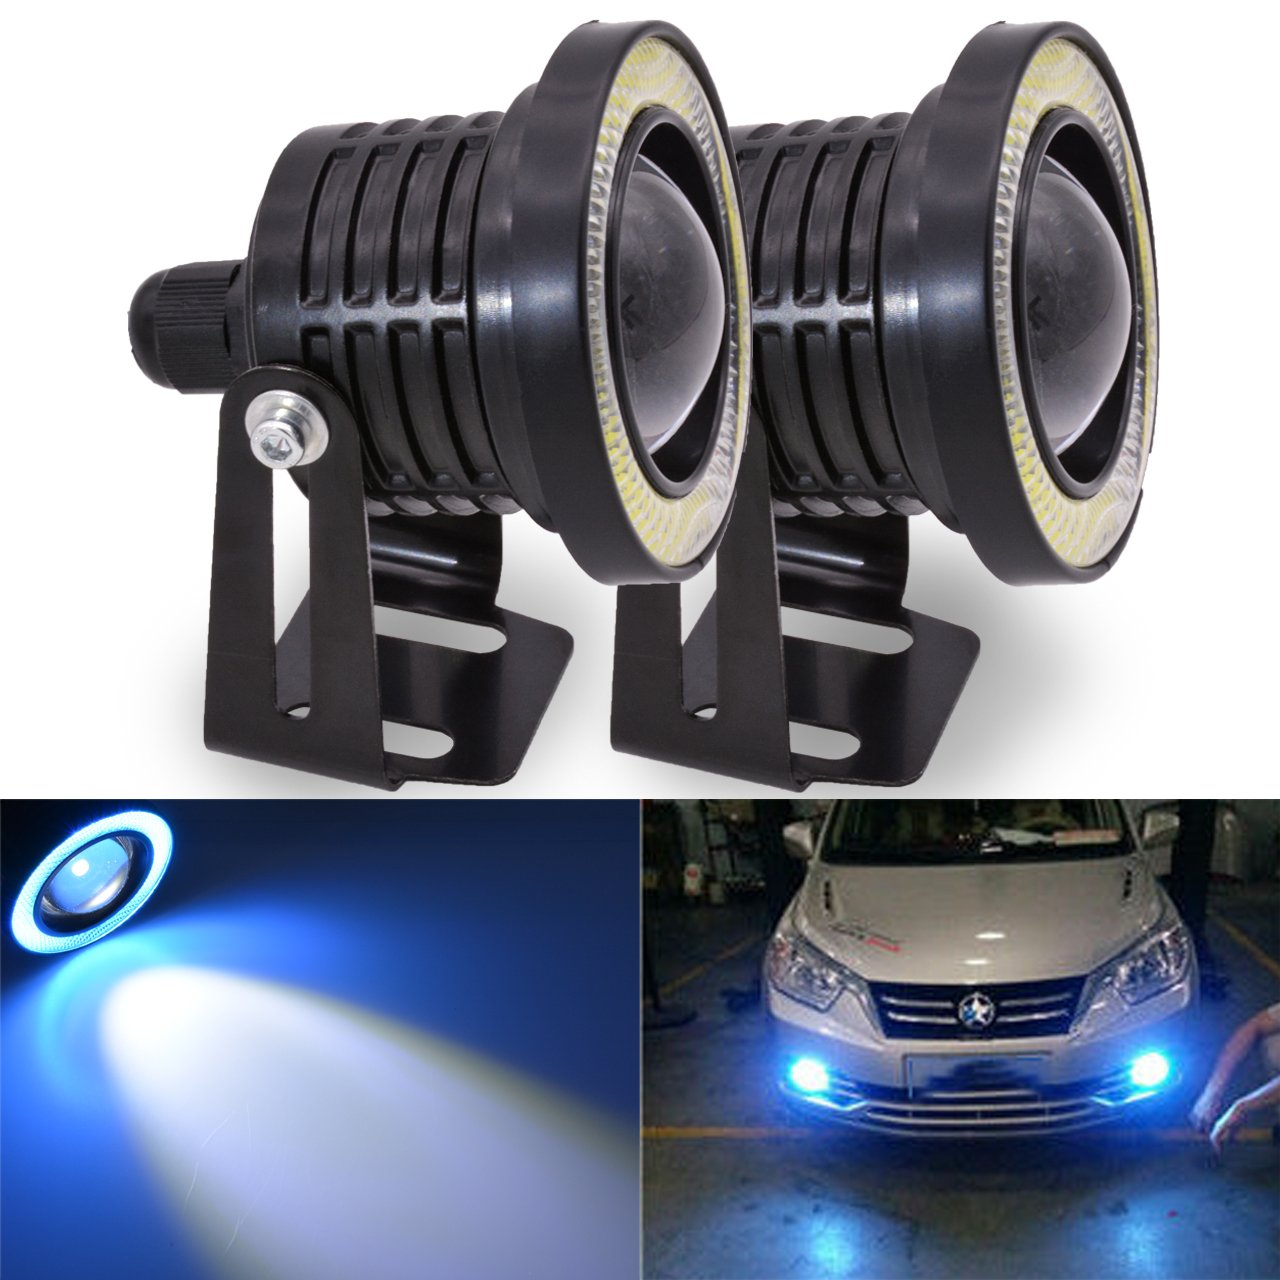 TUINCYN 3 Inch LED Fog Light White COB Halo Angel Eye Rings Used for Daytime Running Light DRL Car Driving Lights Projector Unversal RGB LED DC 12V-16V 3200 Lumens (Pack of 2)